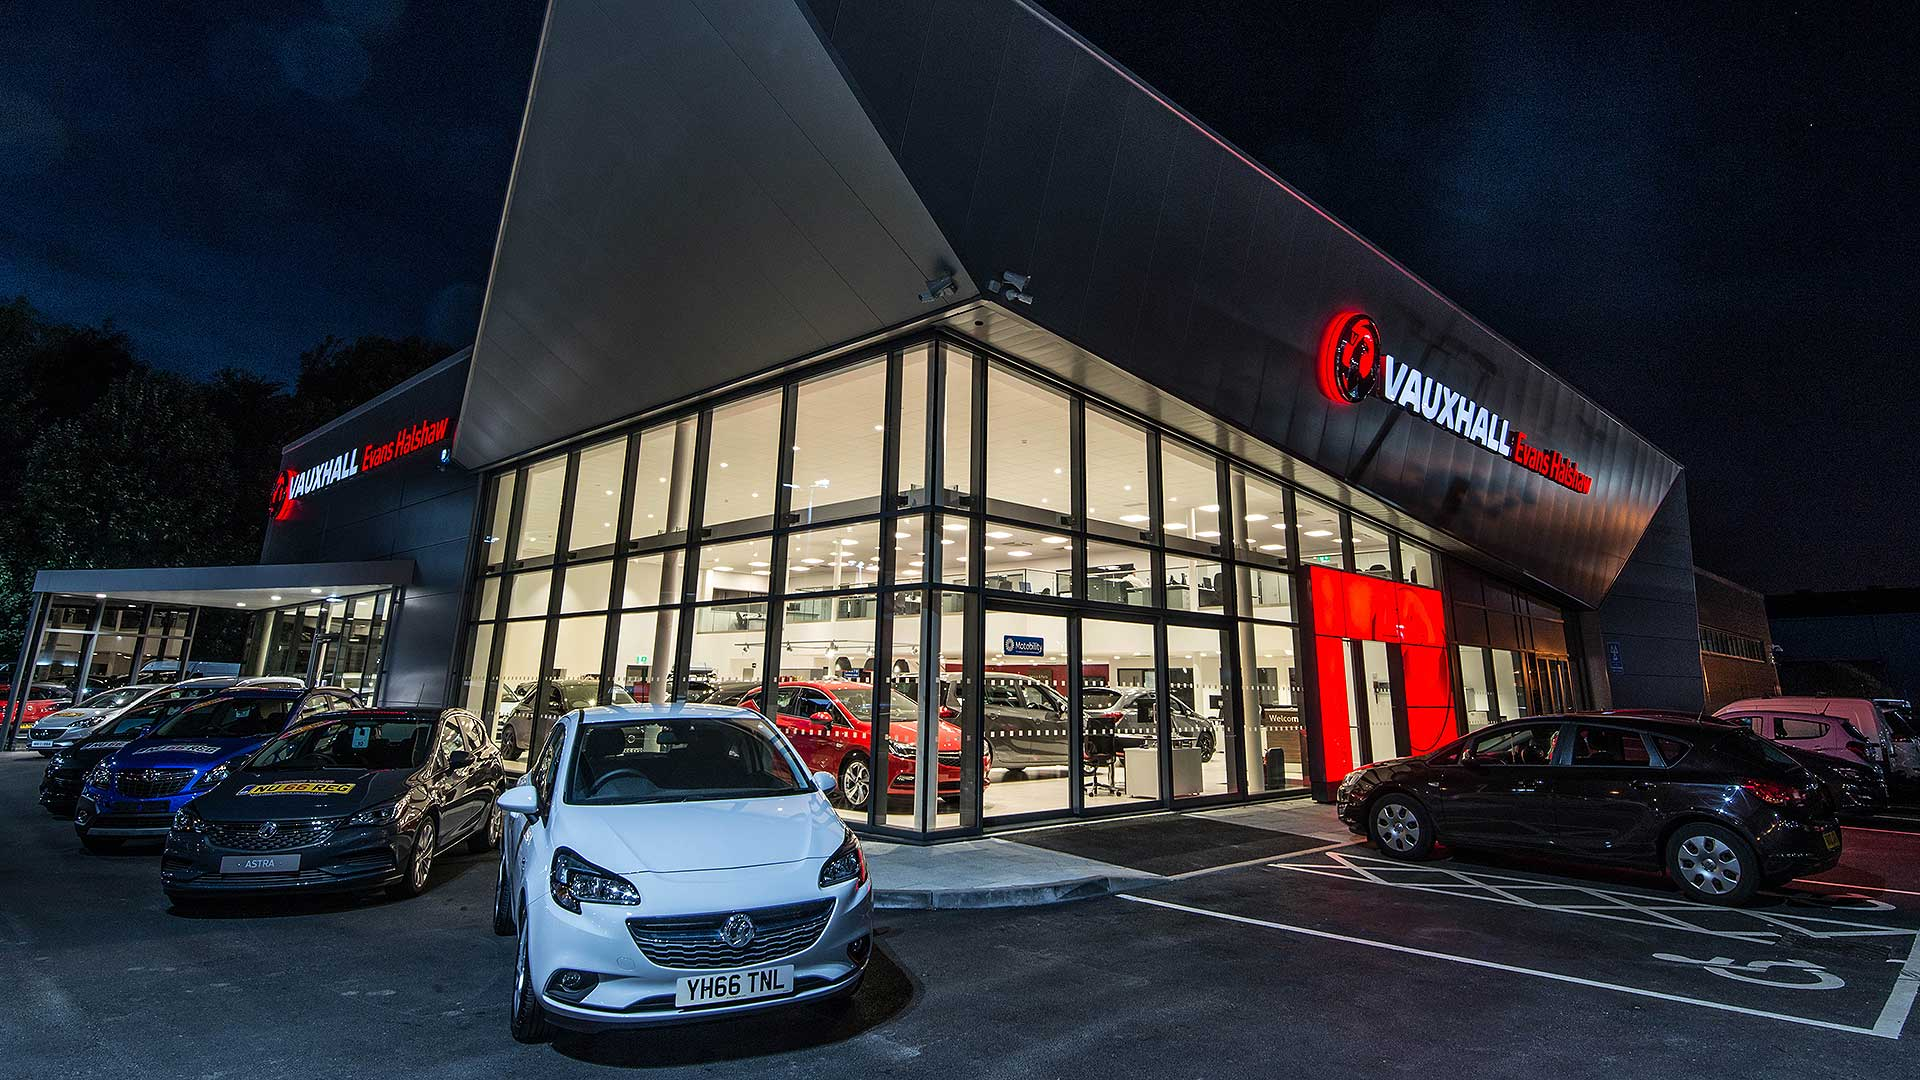 Vauxhall UK car dealer at night